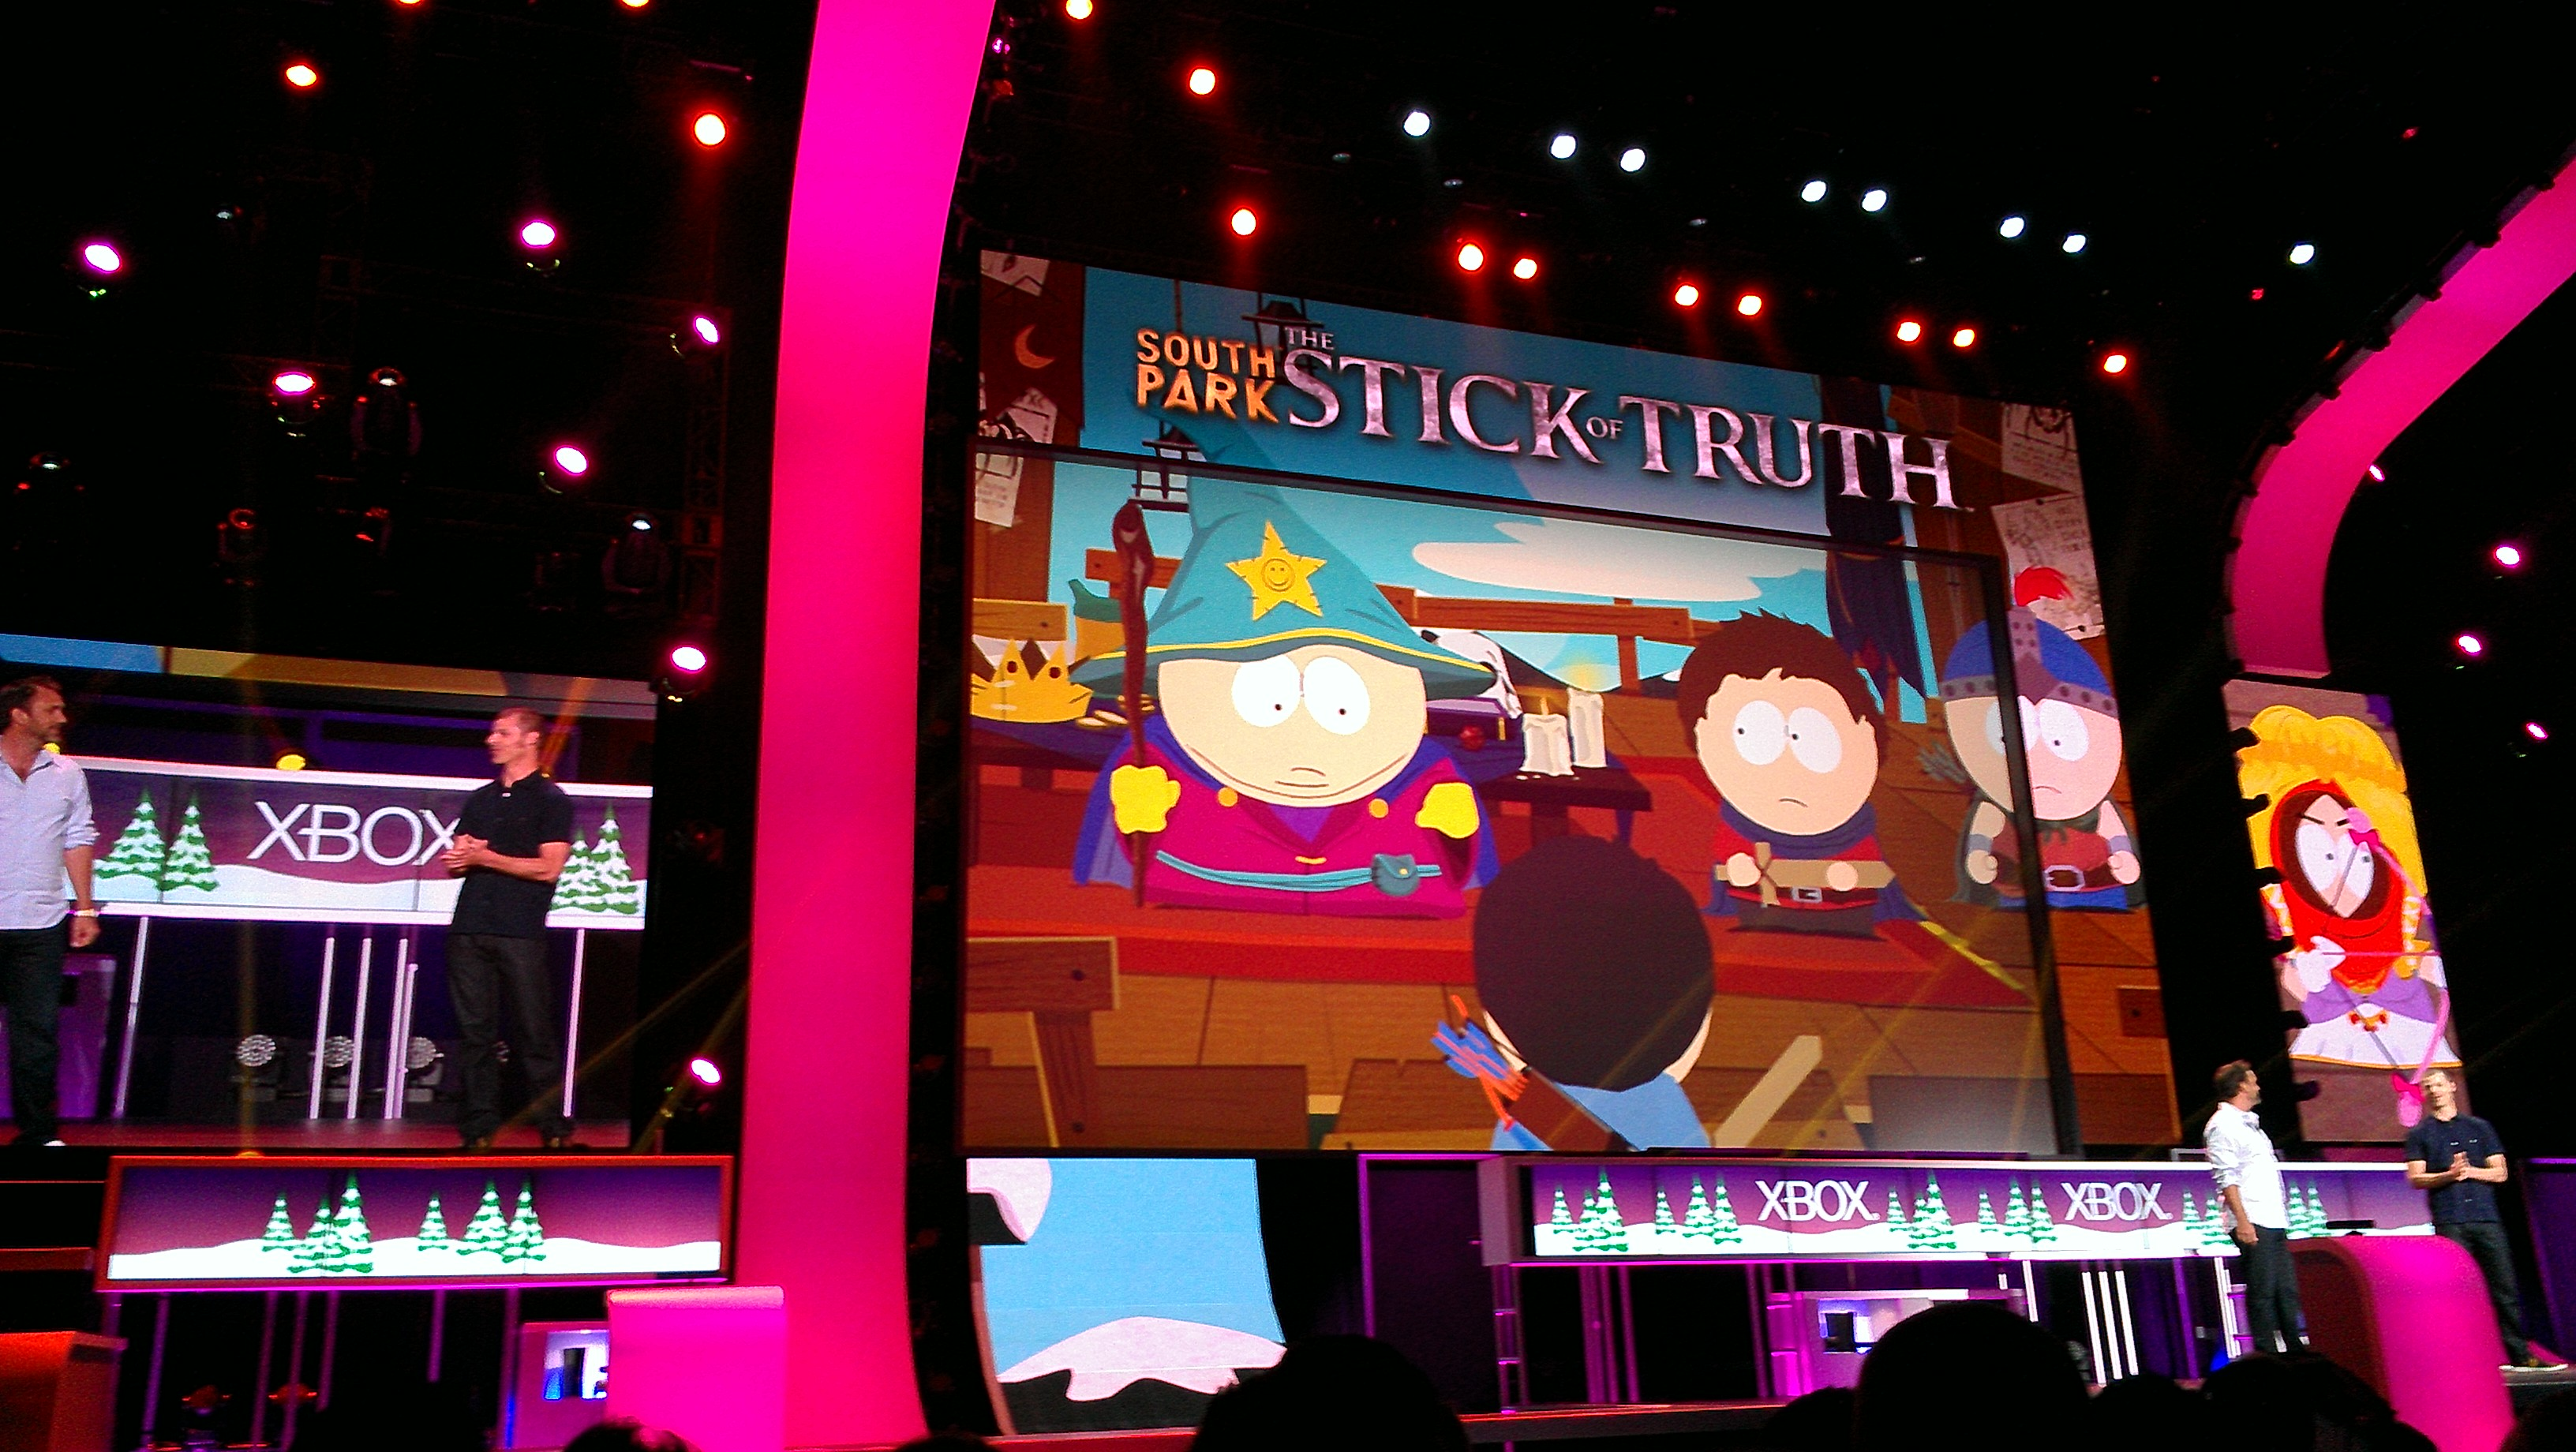 South Park Gets a Video Game by the Show Creators and THQ